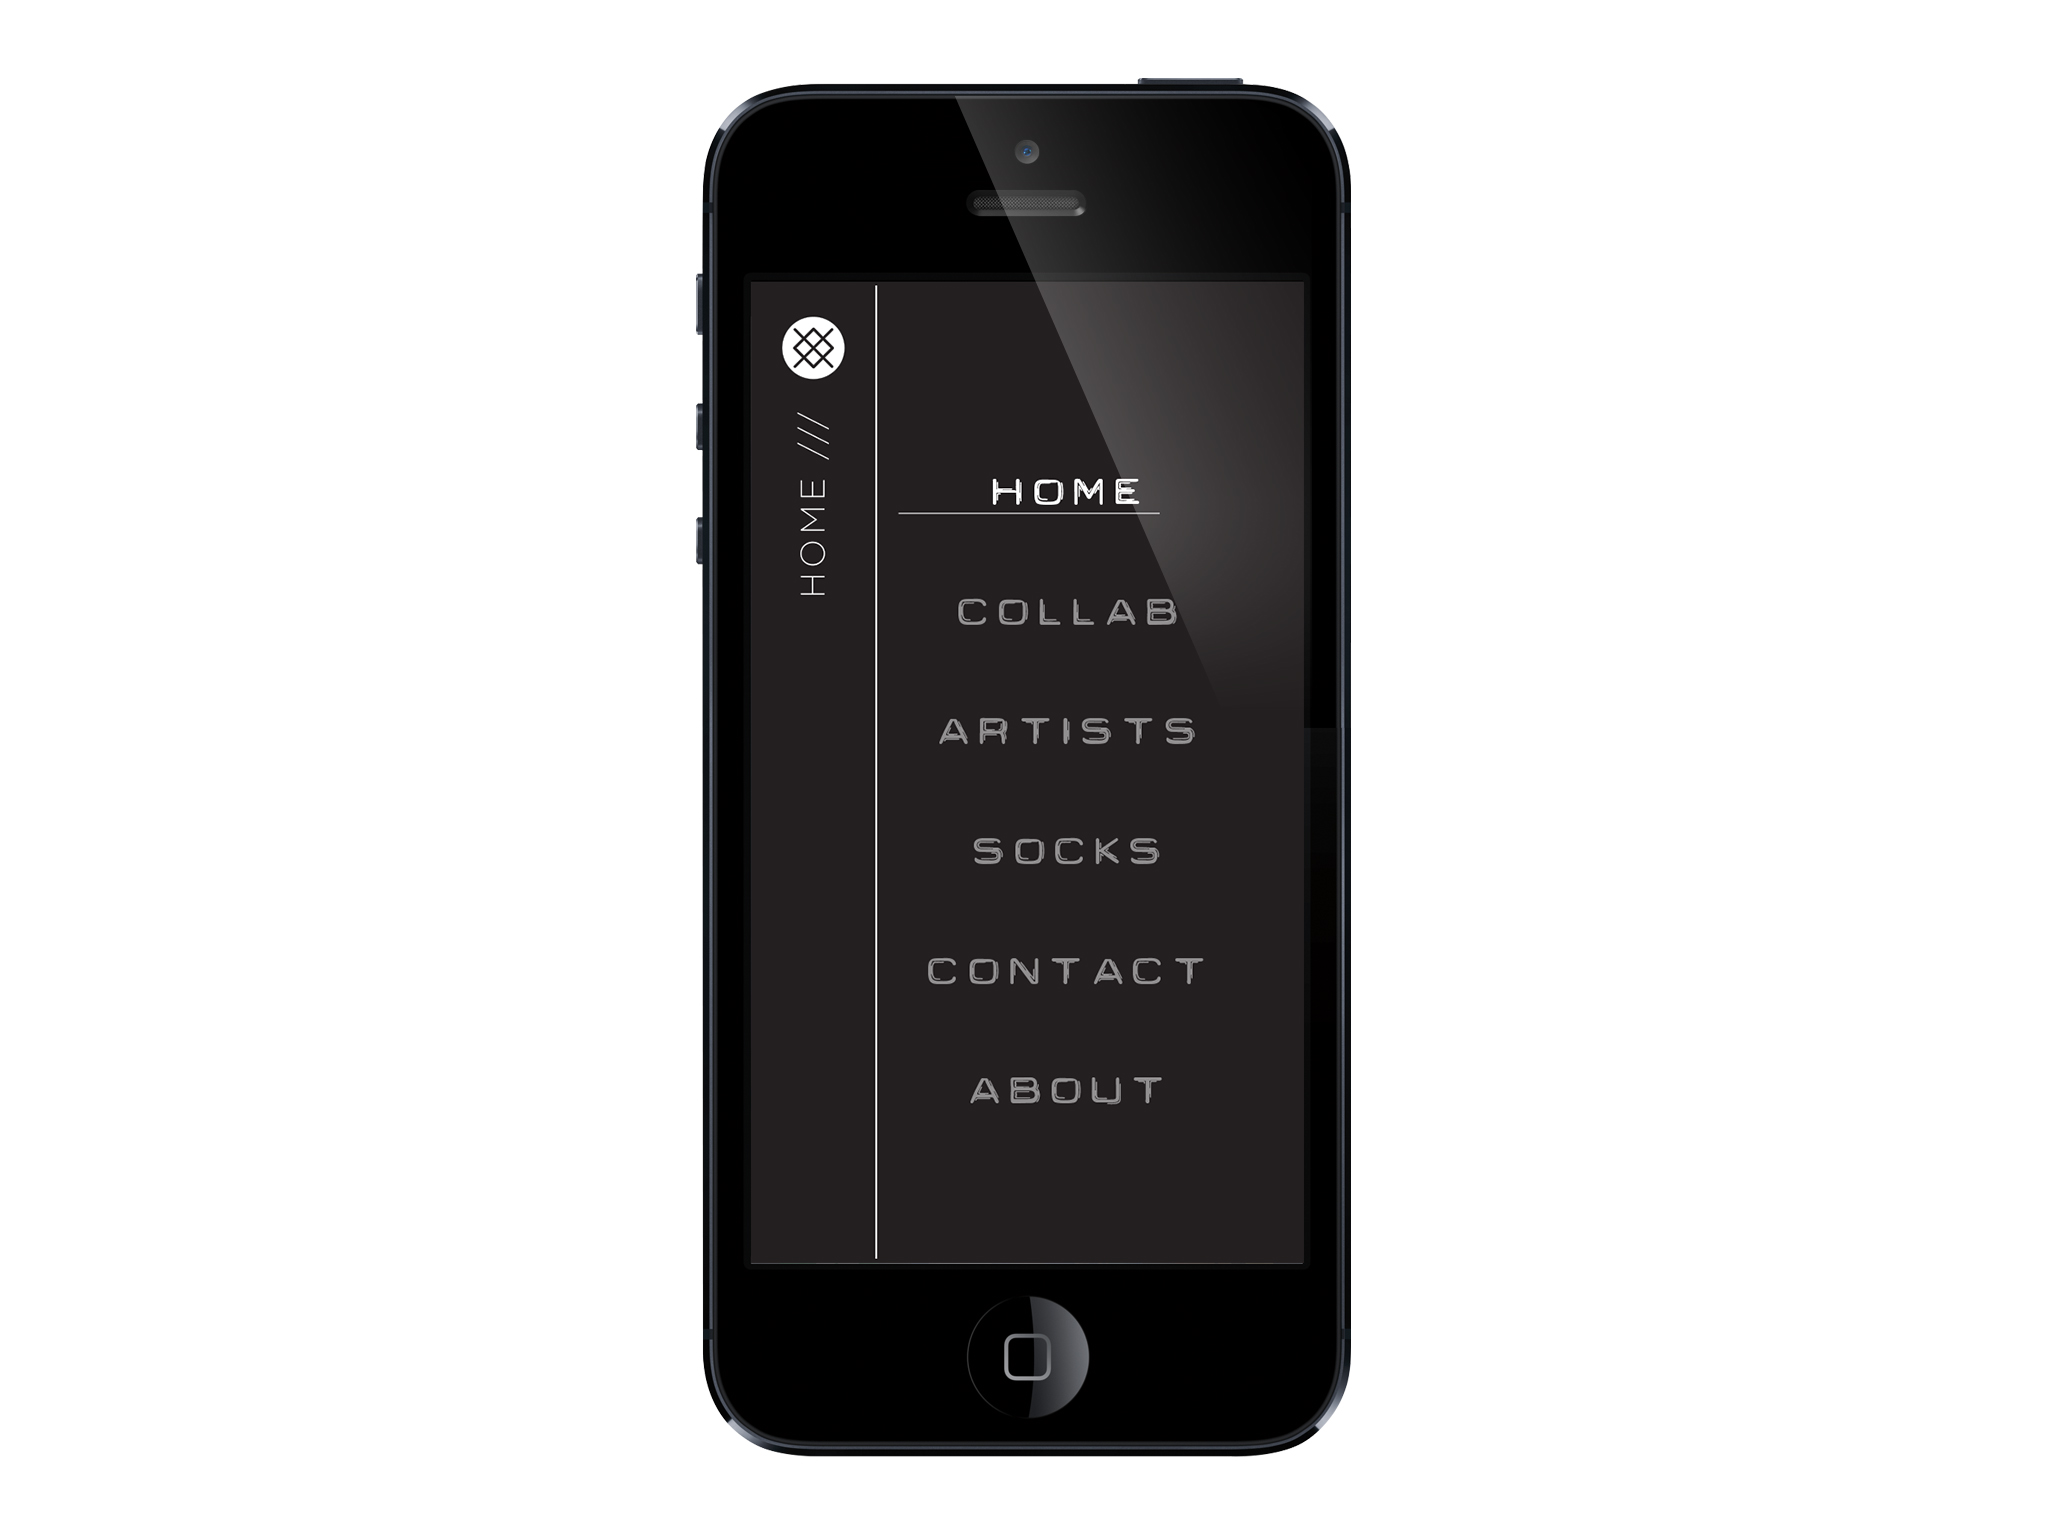 iPhone 5 (vertical) mockup2.jpg